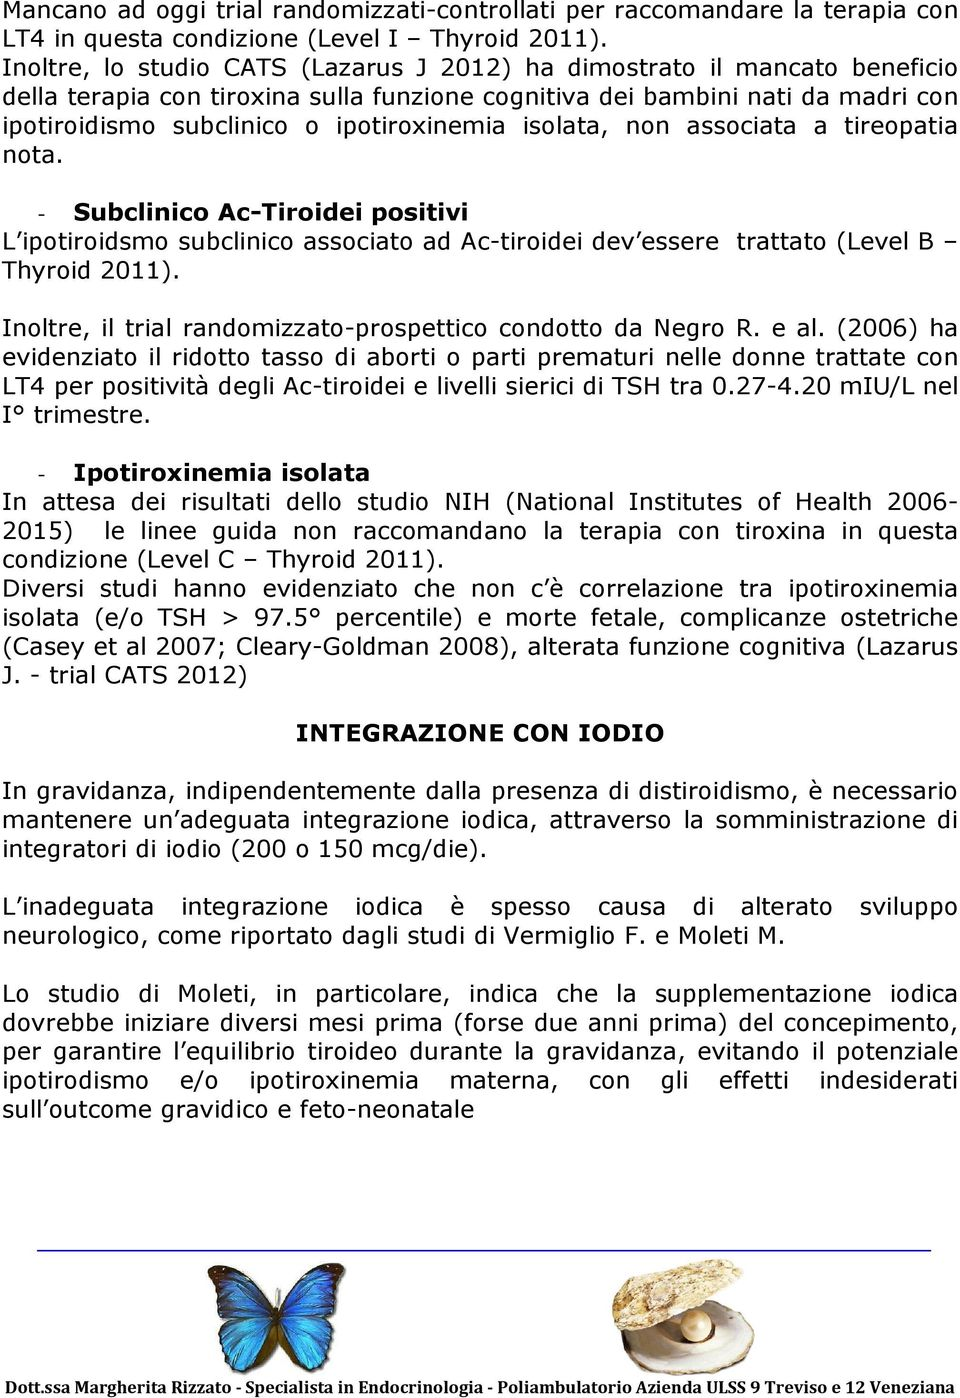 isolata, non associata a tireopatia nota. - Subclinico Ac-Tiroidei positivi L ipotiroidsmo subclinico associato ad Ac-tiroidei dev essere trattato (Level B Thyroid 2011).